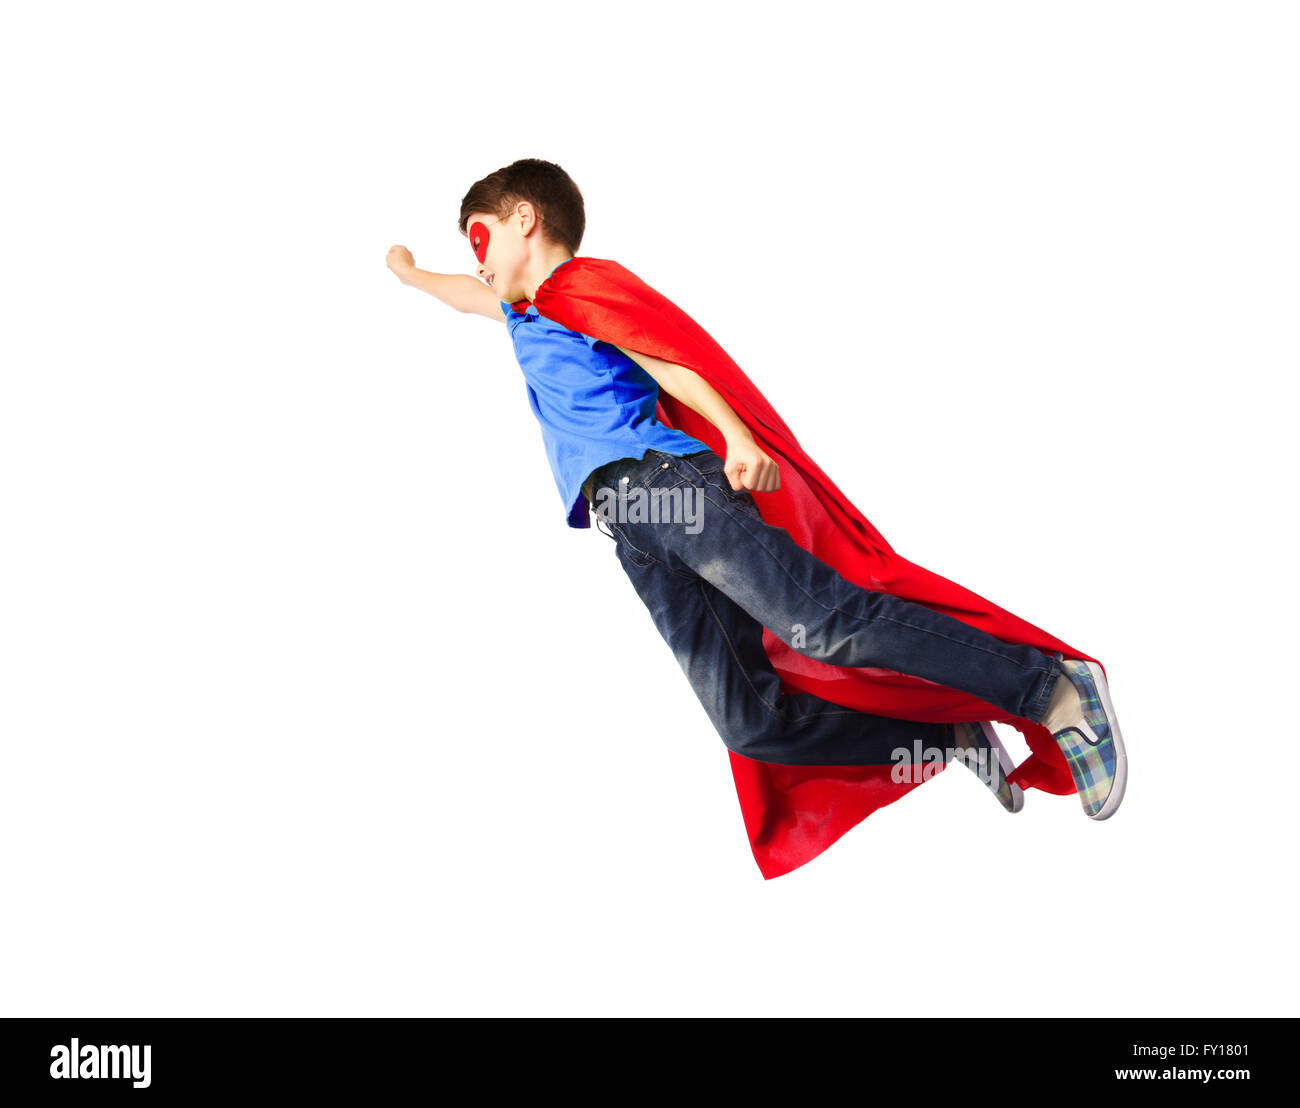 boy in red superhero cape and mask flying on air - Stock Image